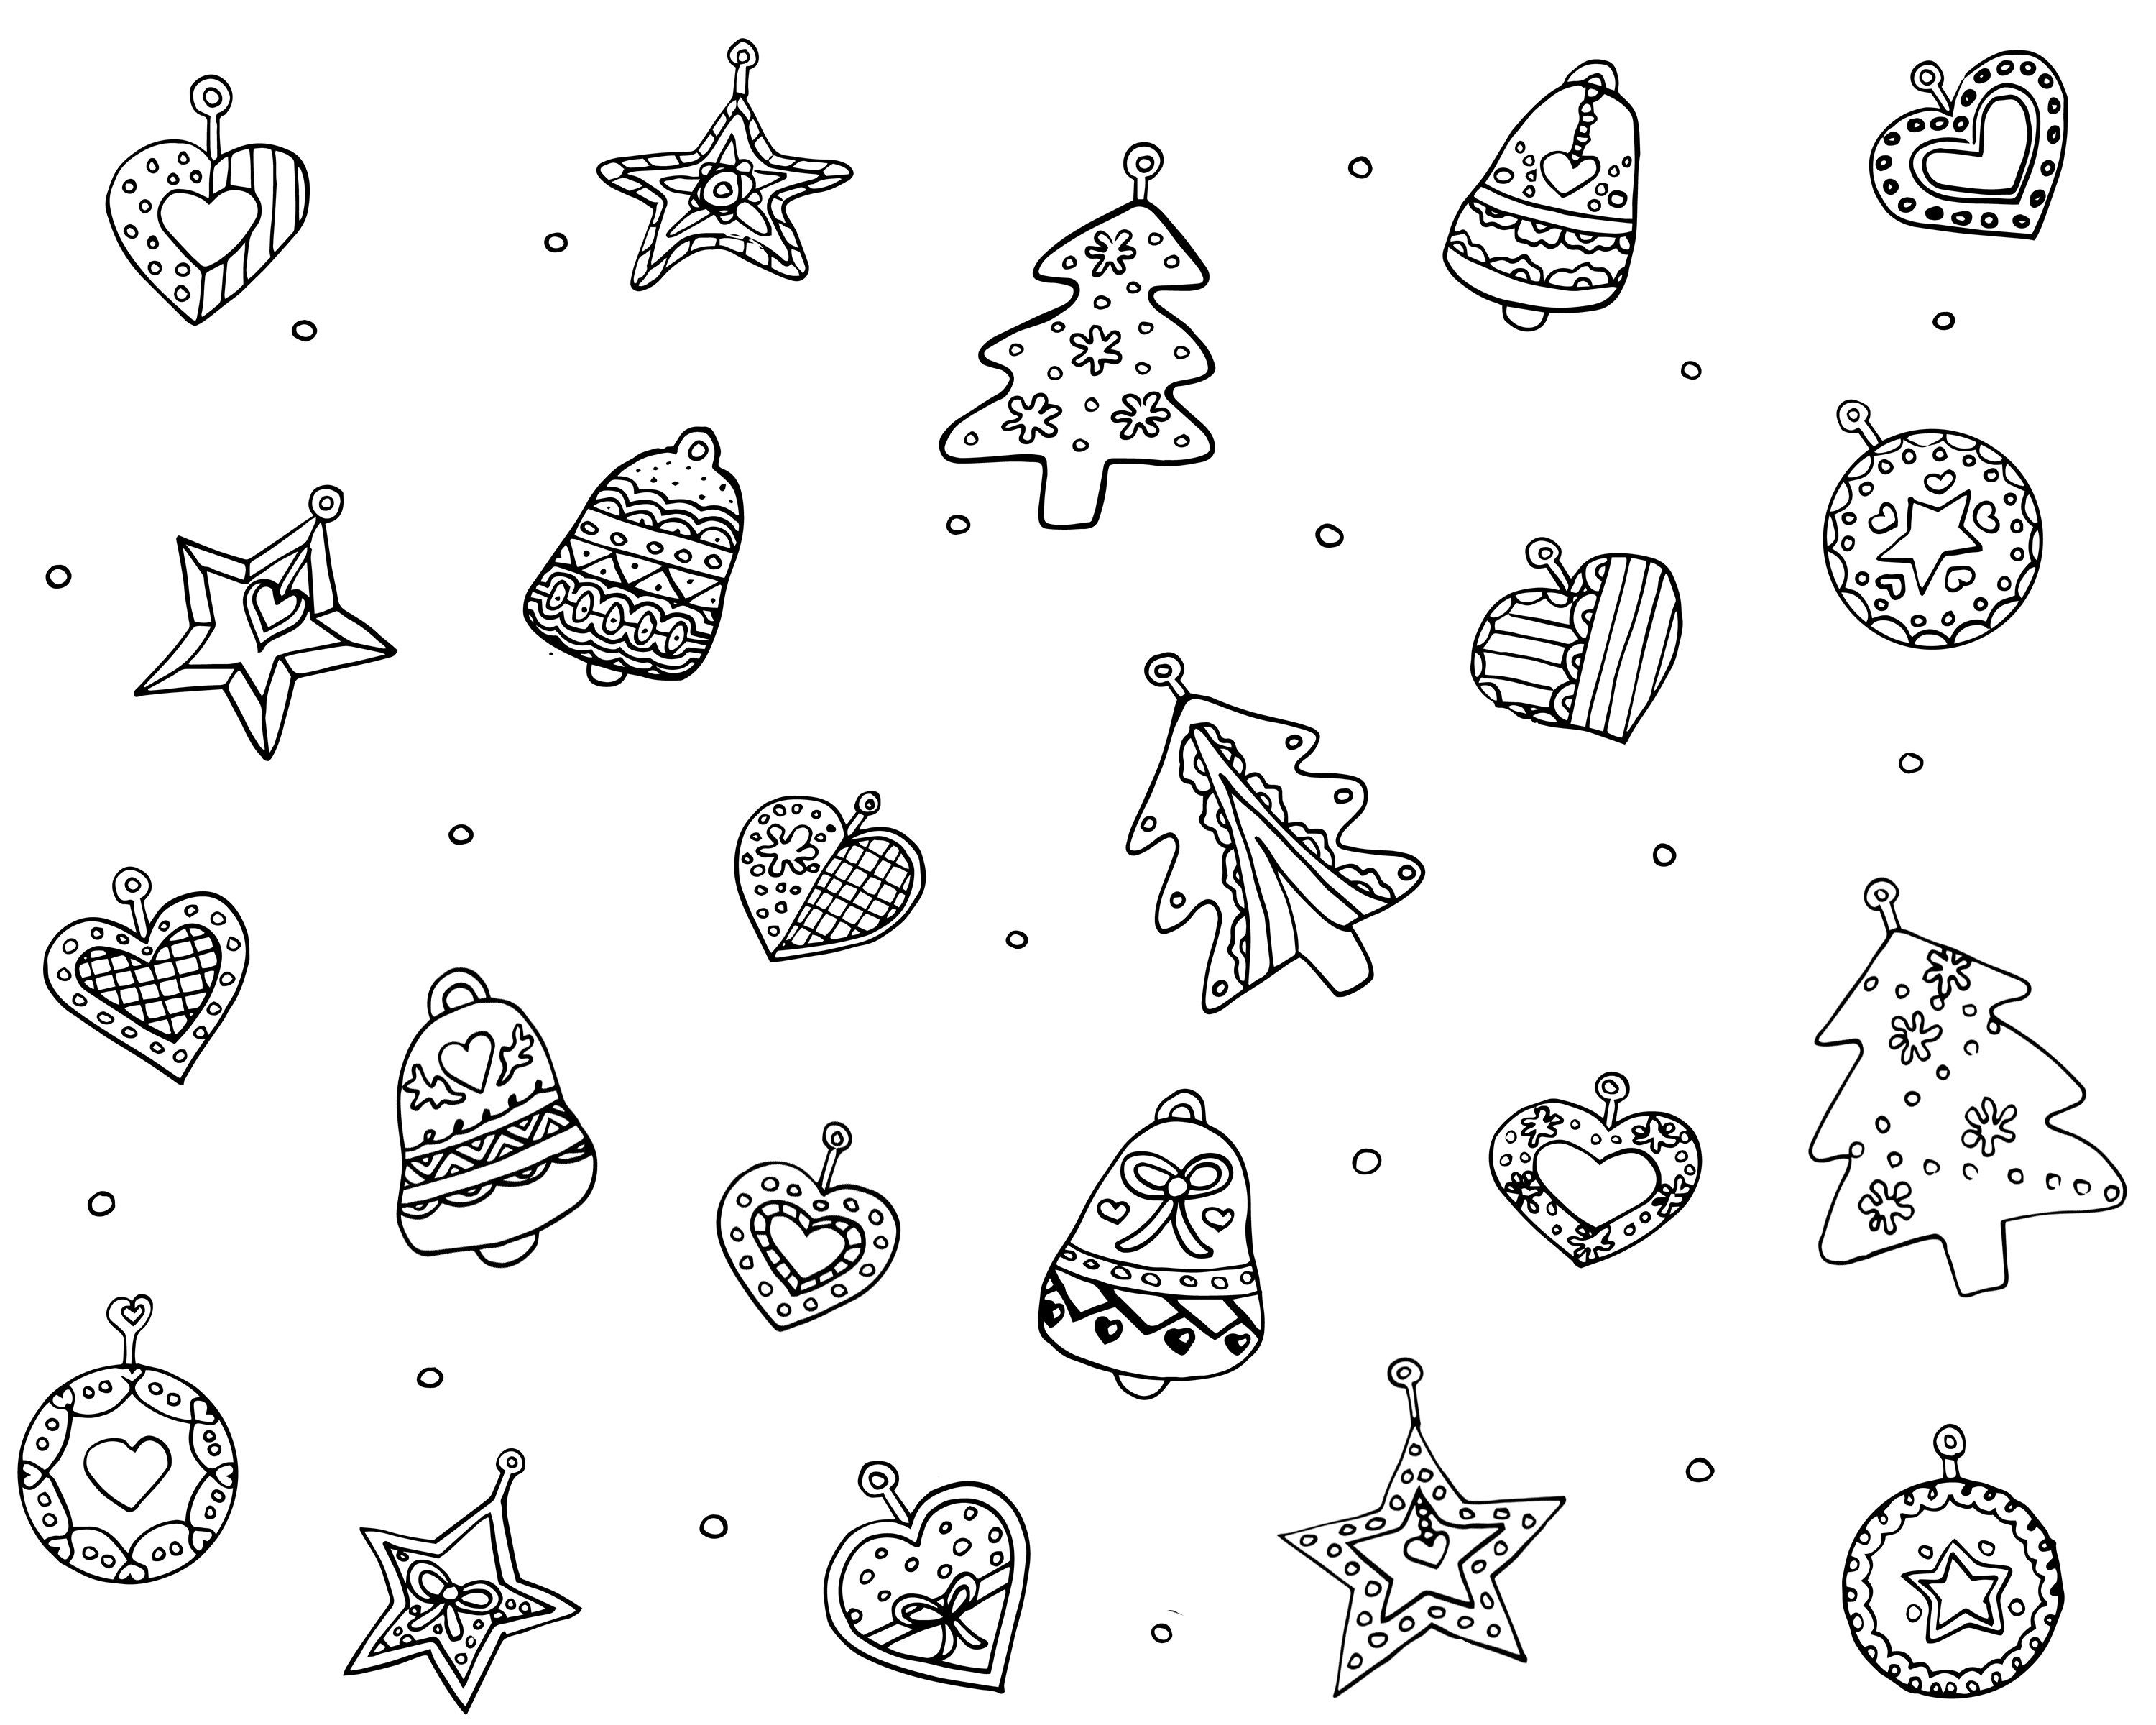 Christmas Ornaments Coloring Pages For Adults With Tree Decorations Sheets New Free